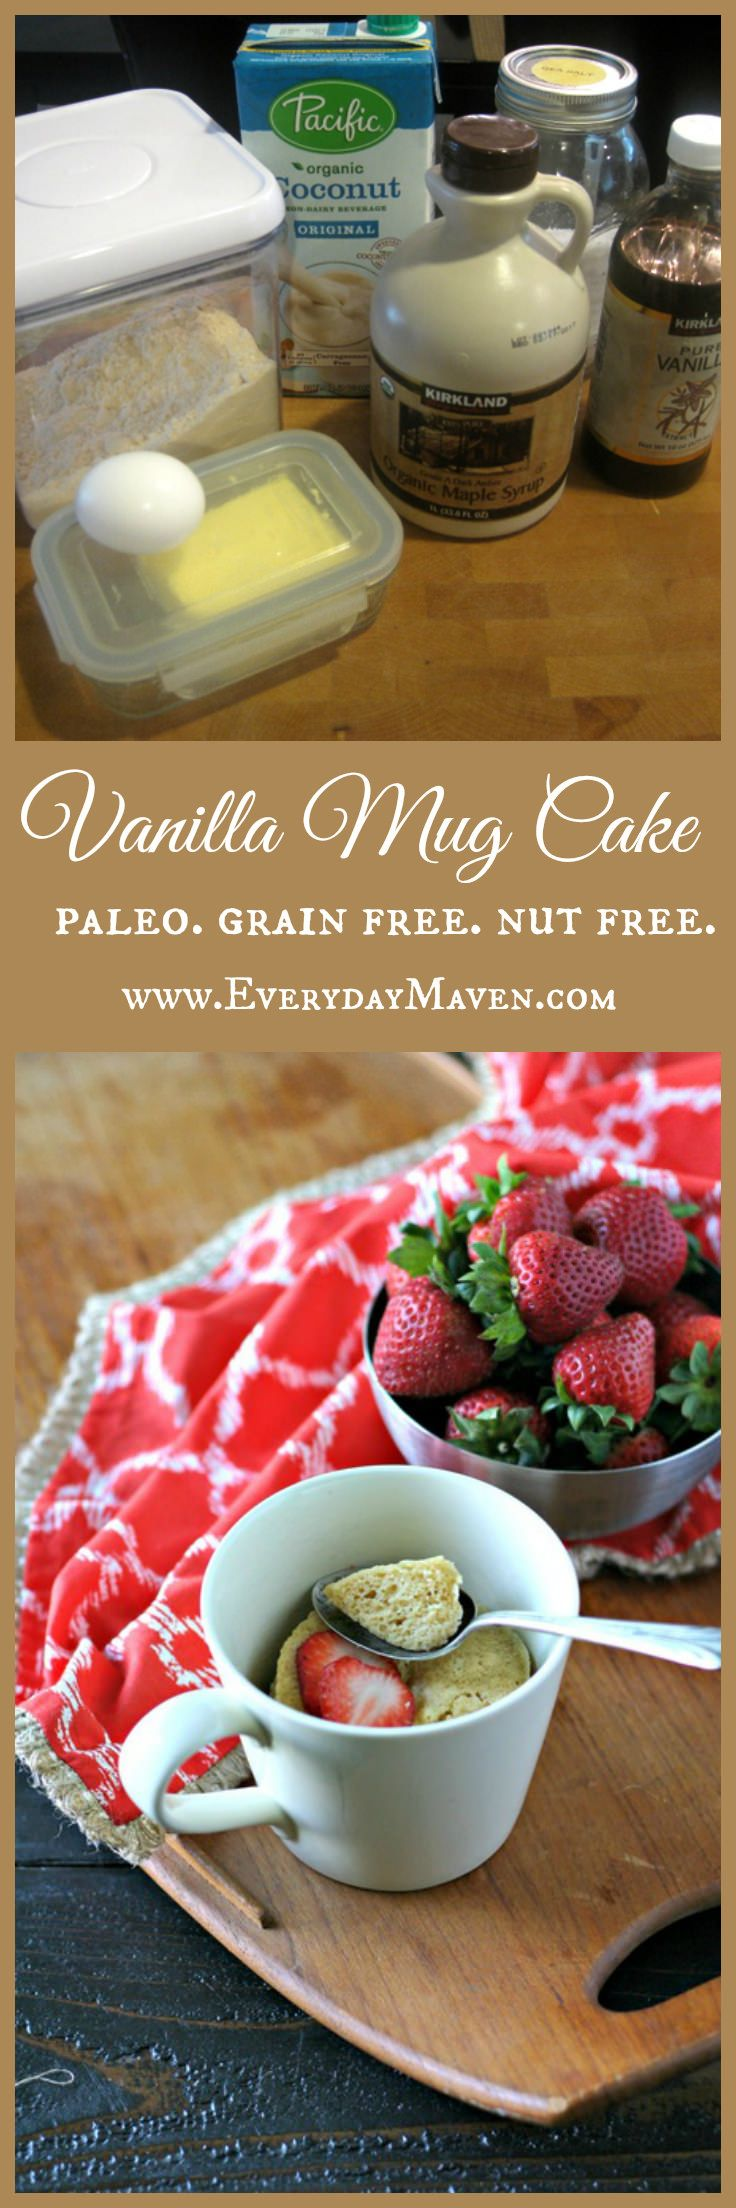 Paleo Vanilla Mug Cake - good as is, with a few chocolate chips melted on top...divine!